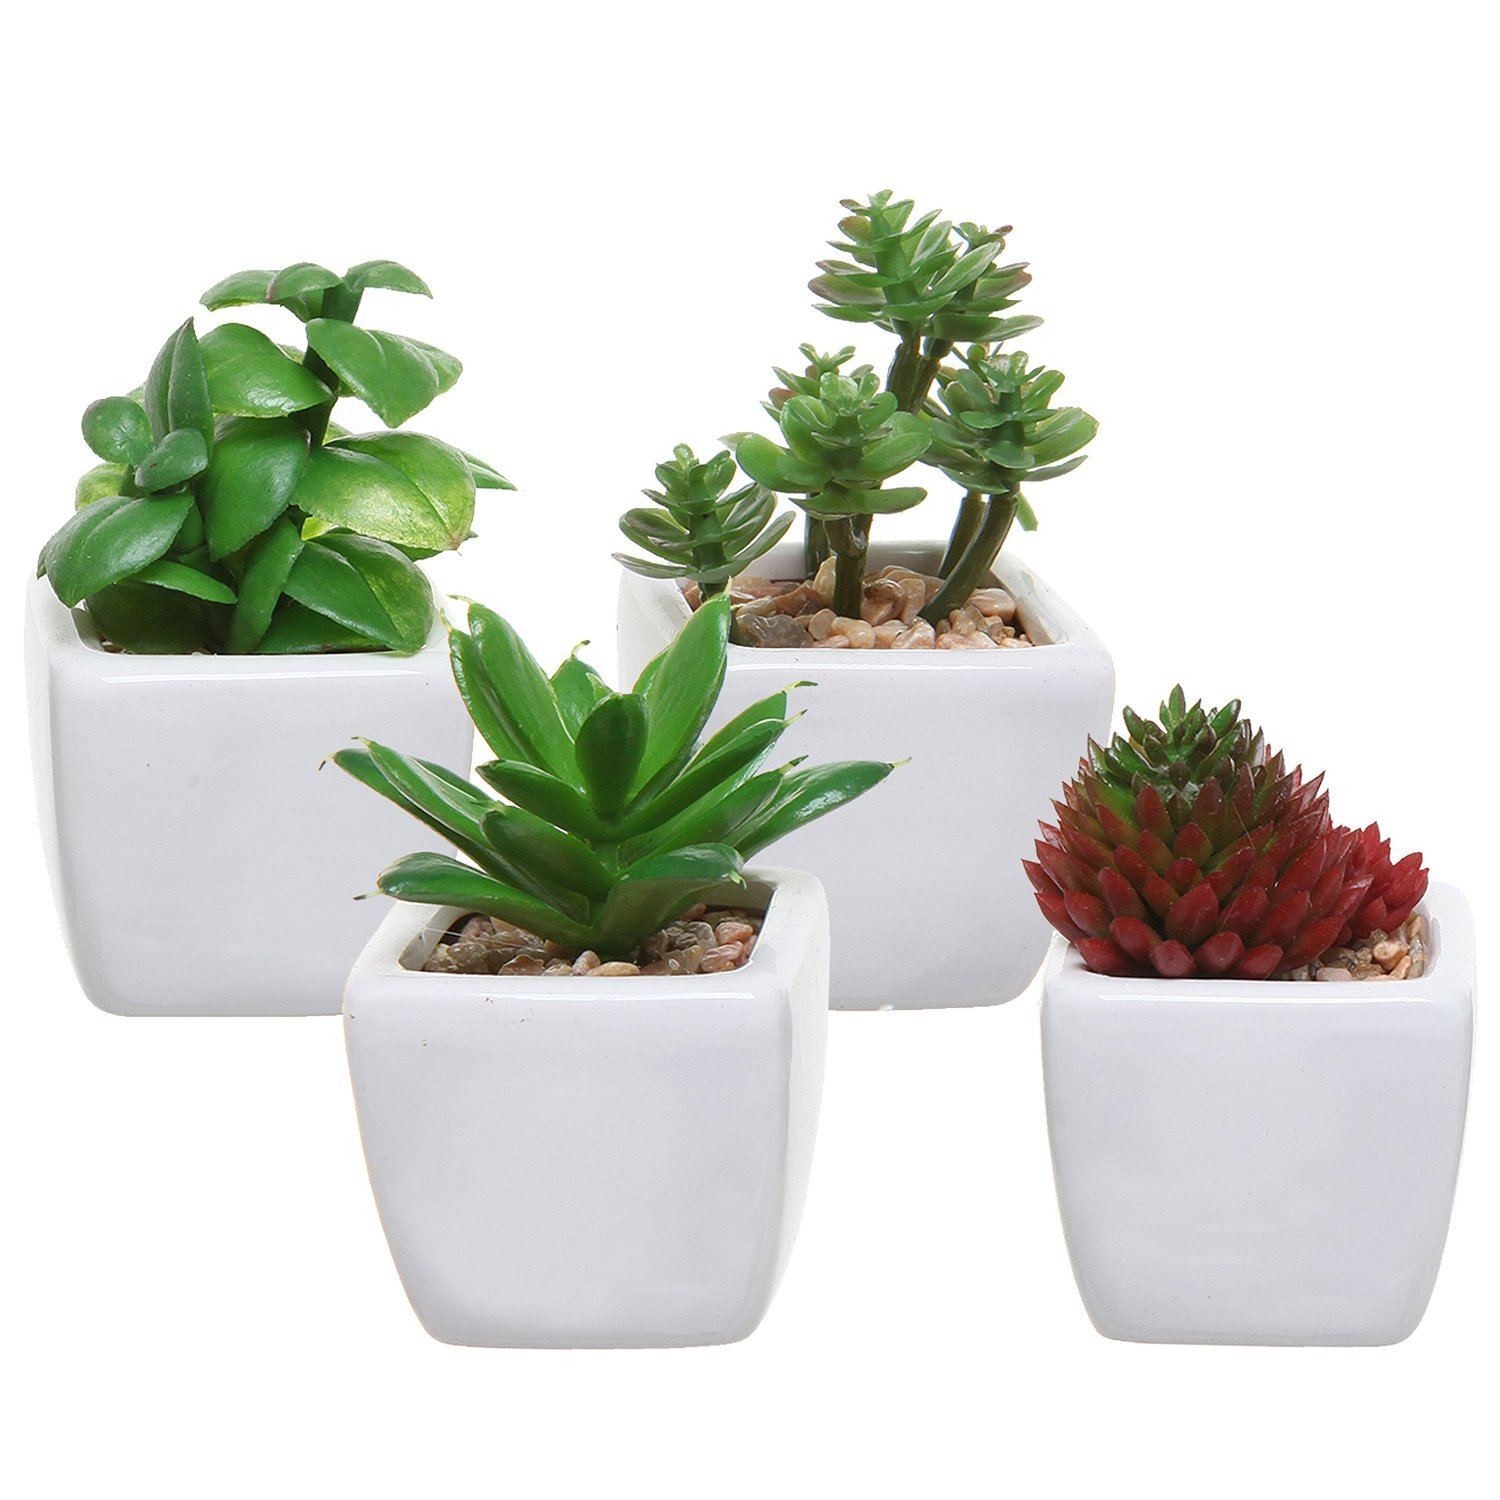 Nice Set Of 4 Small Modern Cube Shaped White Ceramic Planter Pots With Artificial  Succulent Plants